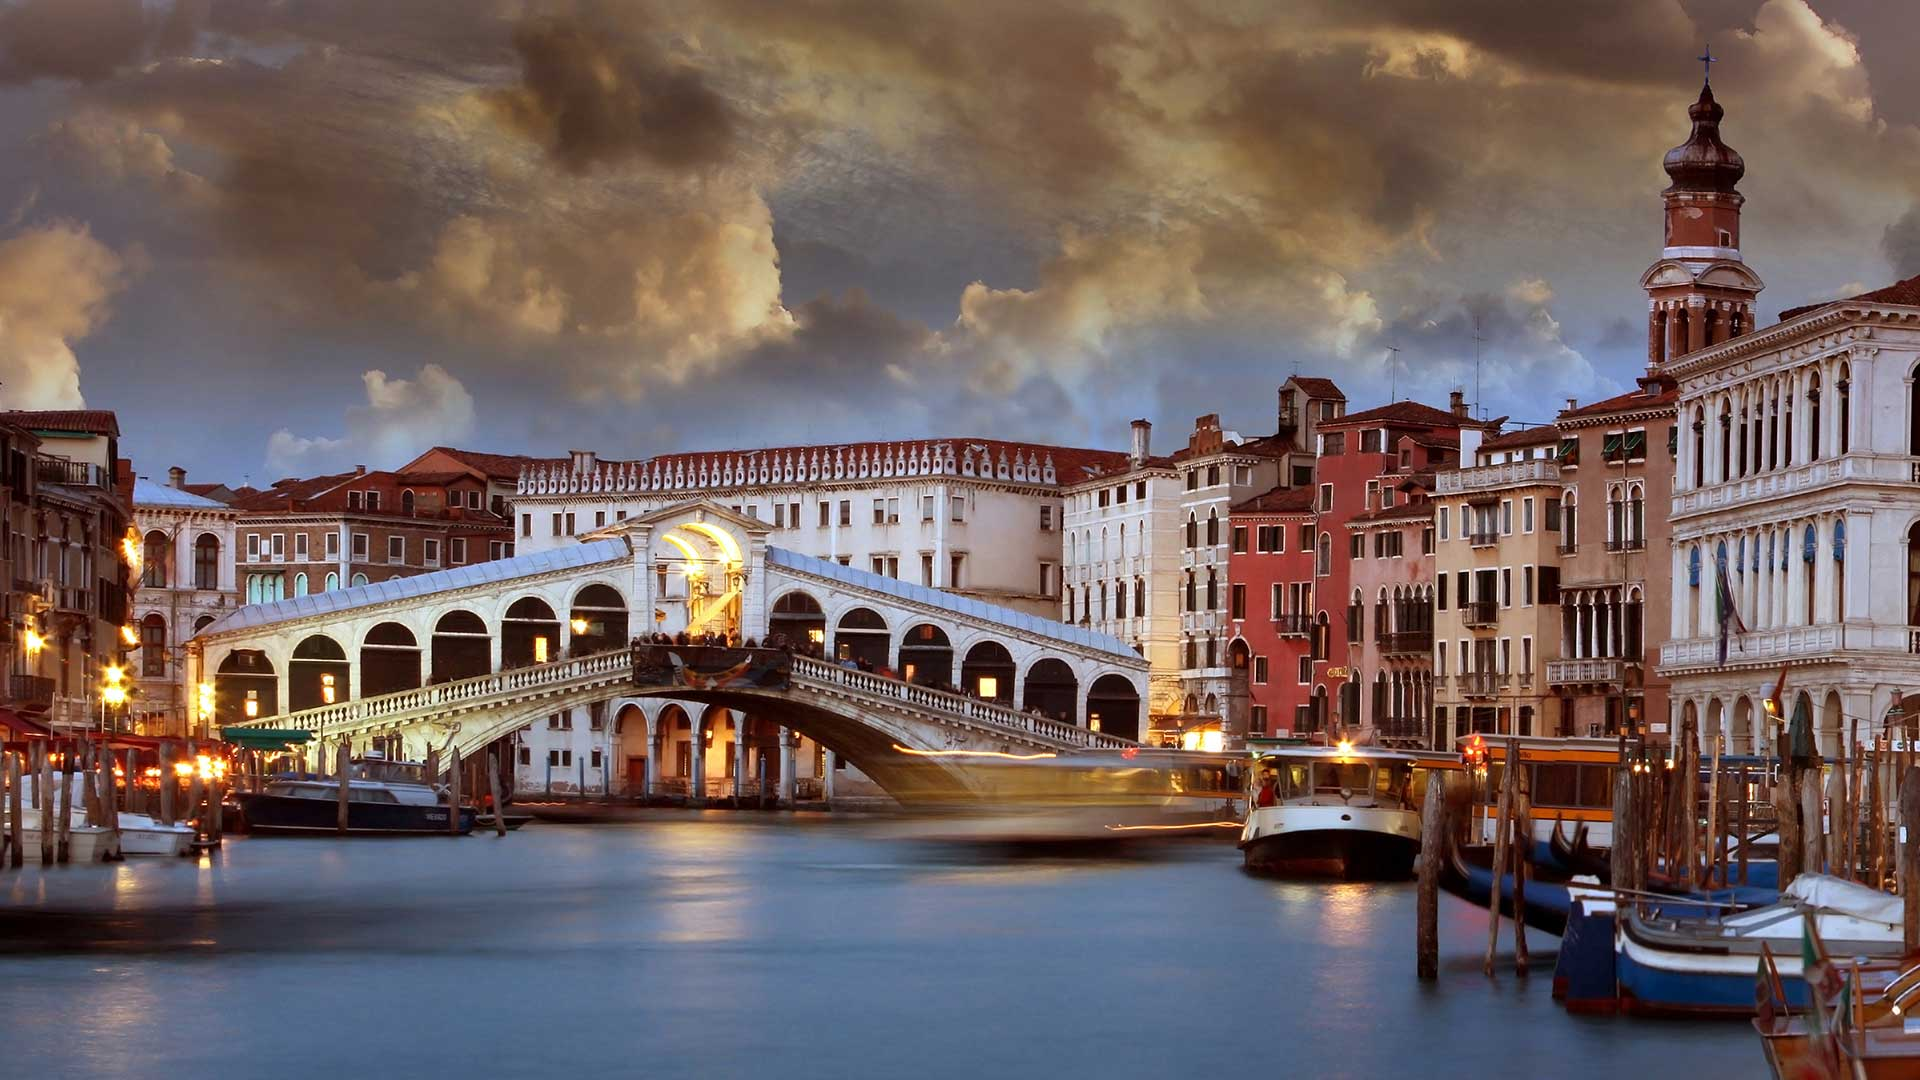 Rialto-Bridge-sunset-san-marco-sestiere